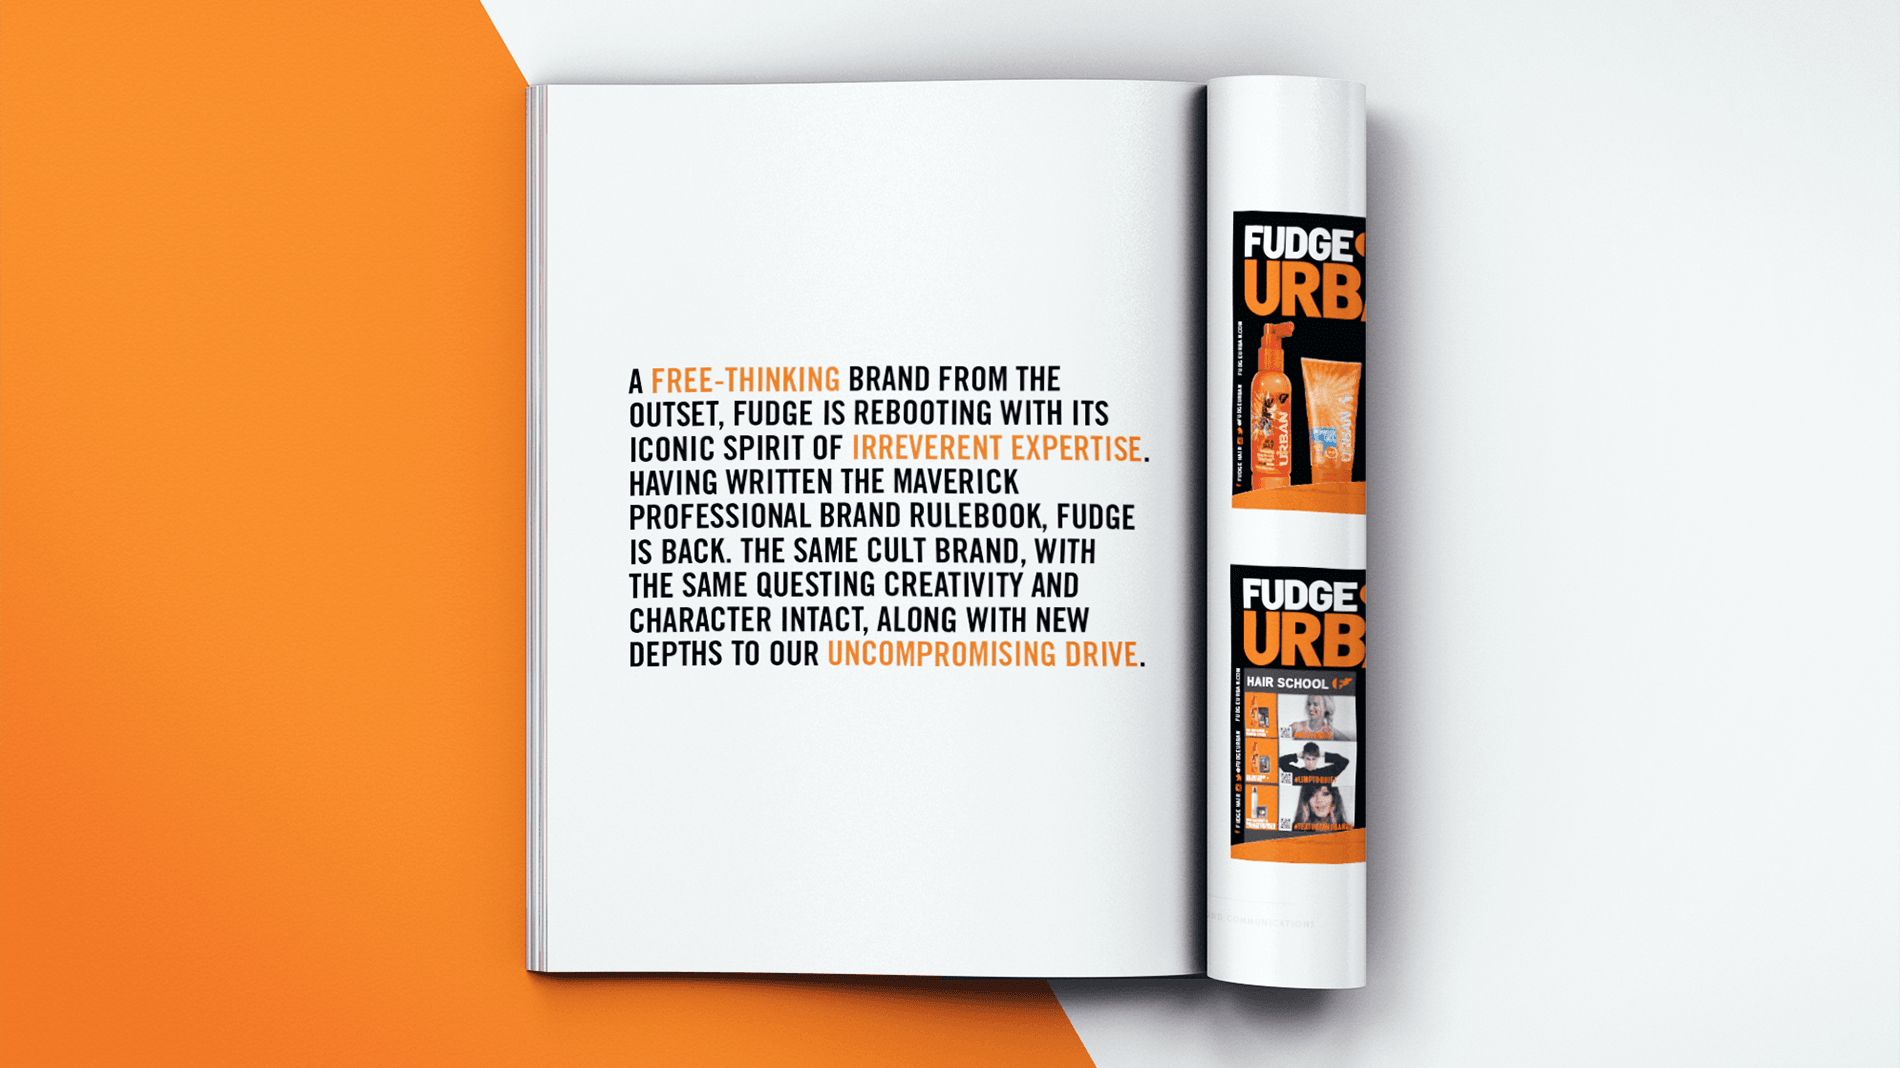 Magazine open spread with advert for Fudge Urban range